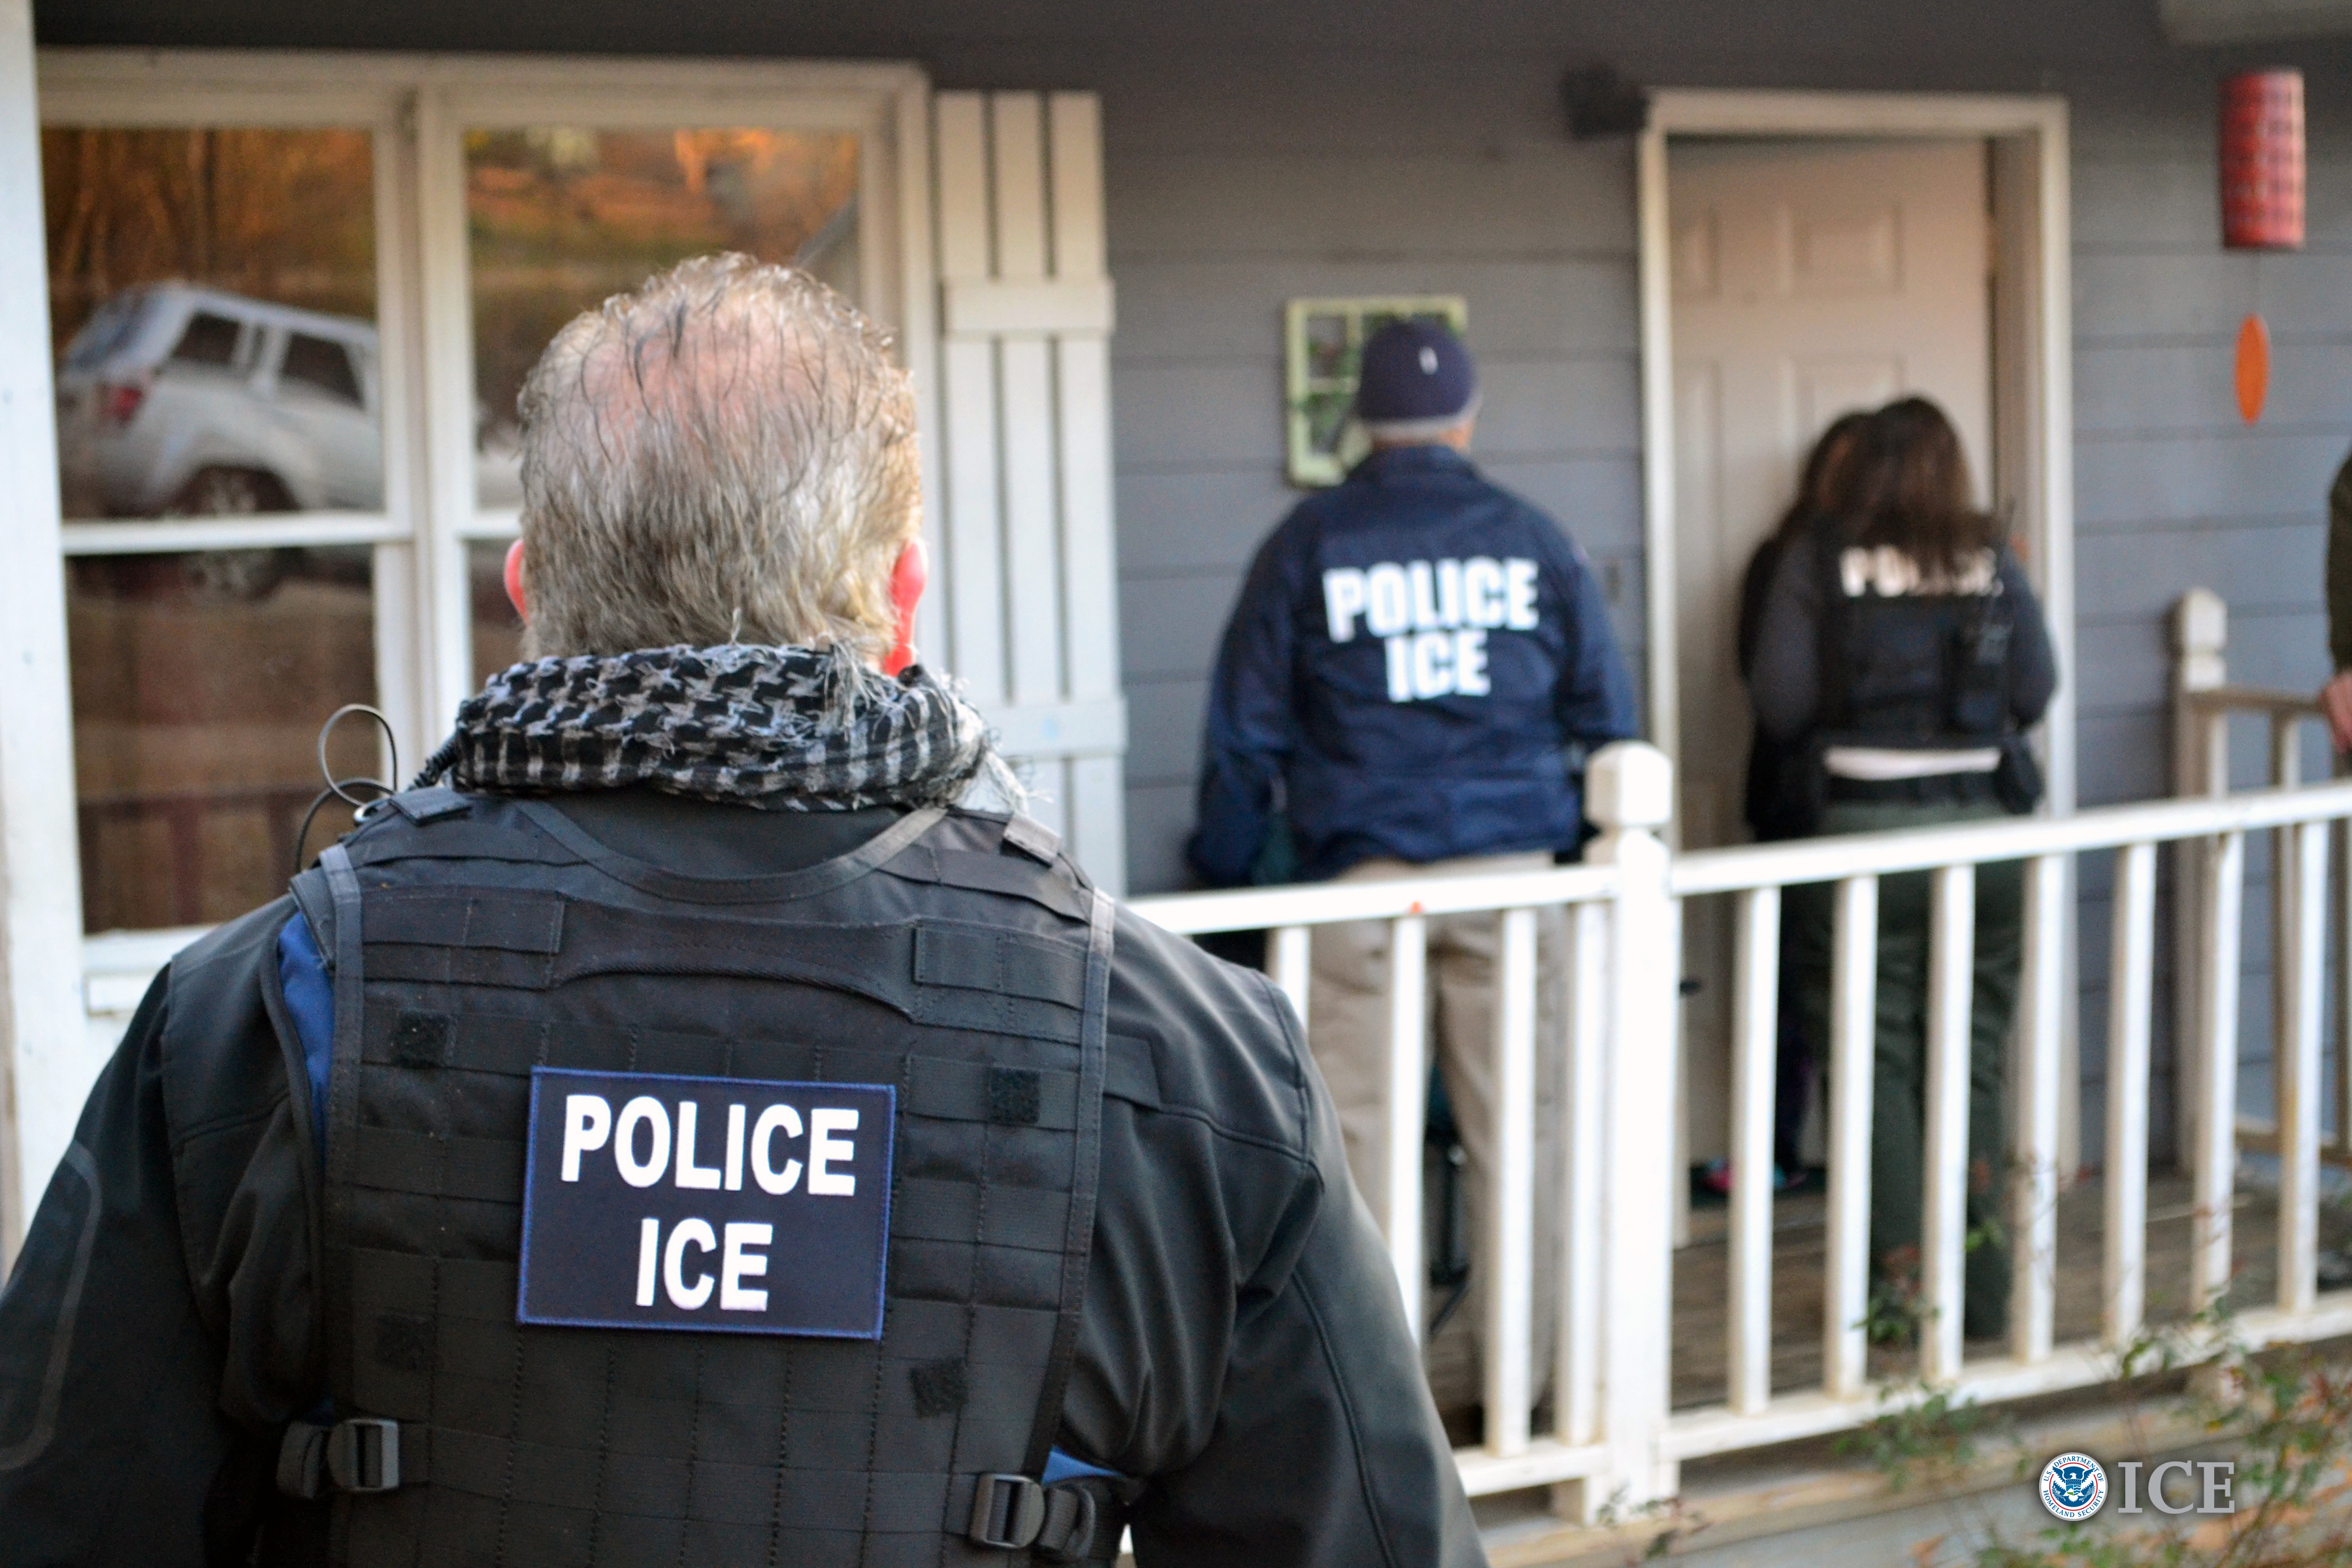 ICE wants to replicate Chicago buildings in new 'urban warfare' training facility